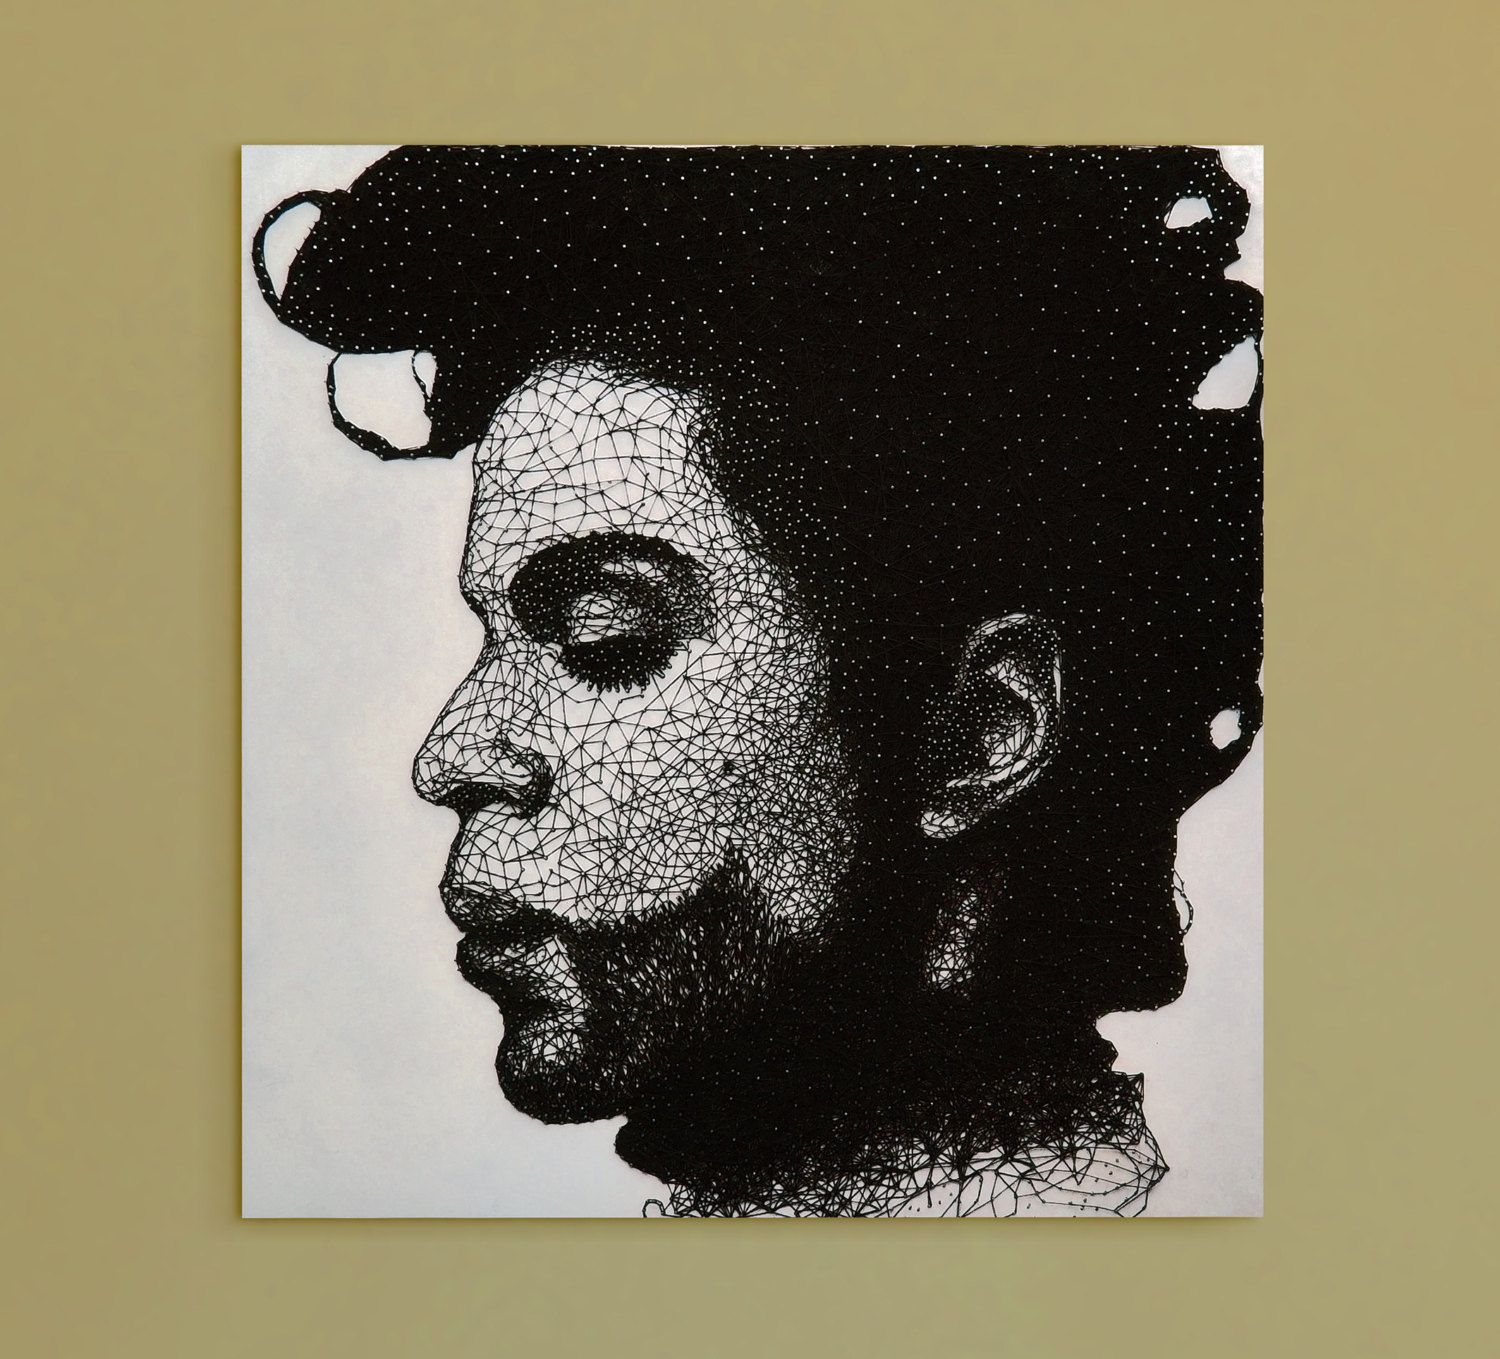 Prince String and Nail Portrait | String art, Etsy and String art ...